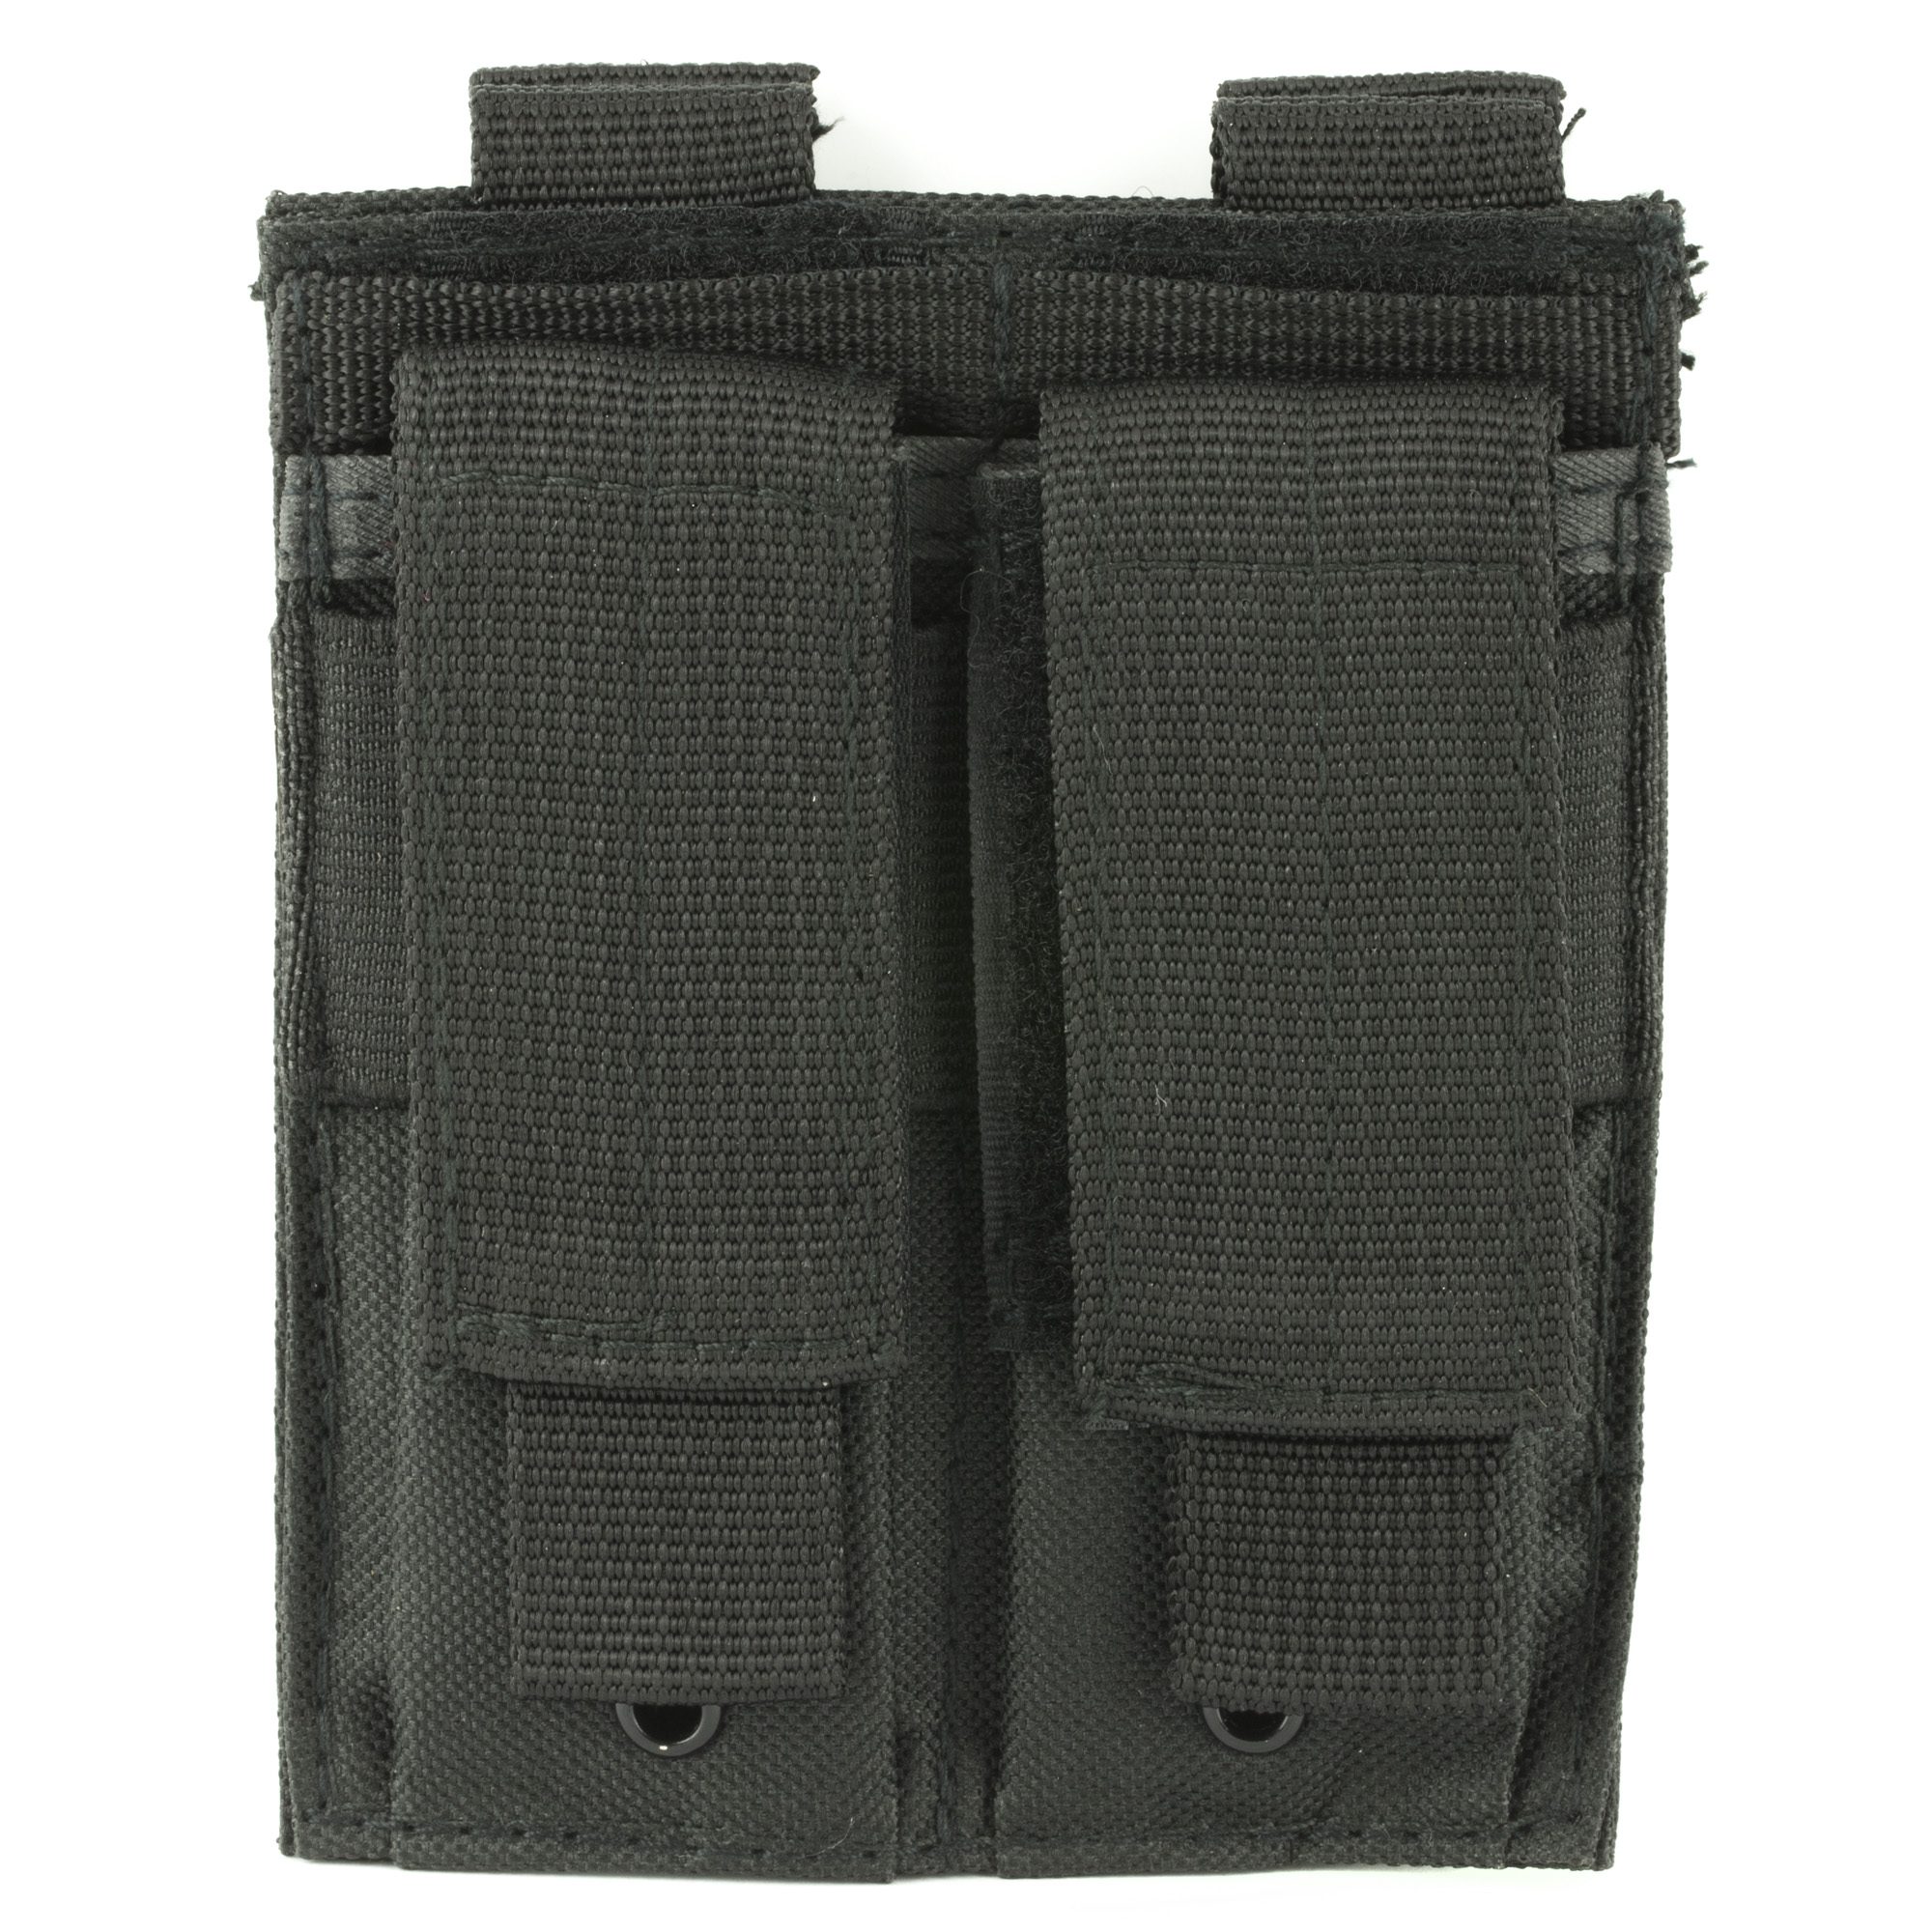 "When you need your spare magazines securely in place with quick access should the need arise"" get the NcSTAR Double Pistol Mag Pouch. Always have two standard size double stack magazines at the ready for your defensive pistol. It features 2 PALS snap straps and MOLLE webbing on the back for multiple attachment methods anywhere you need it. The Velcro closures are adjustable to the height of your standard capacity magazines and have pull tabs so there no fumbling around to deploy additional ammunition quickly. Constructed with durable heavy duty fabric and featuring drainage grommets for adverse weather"" this mag pouch will last a lifetime. Keep your spare ammo right at hand where you need it"" when you need it with the NcSTAR Double Pistol Mag Pouch."